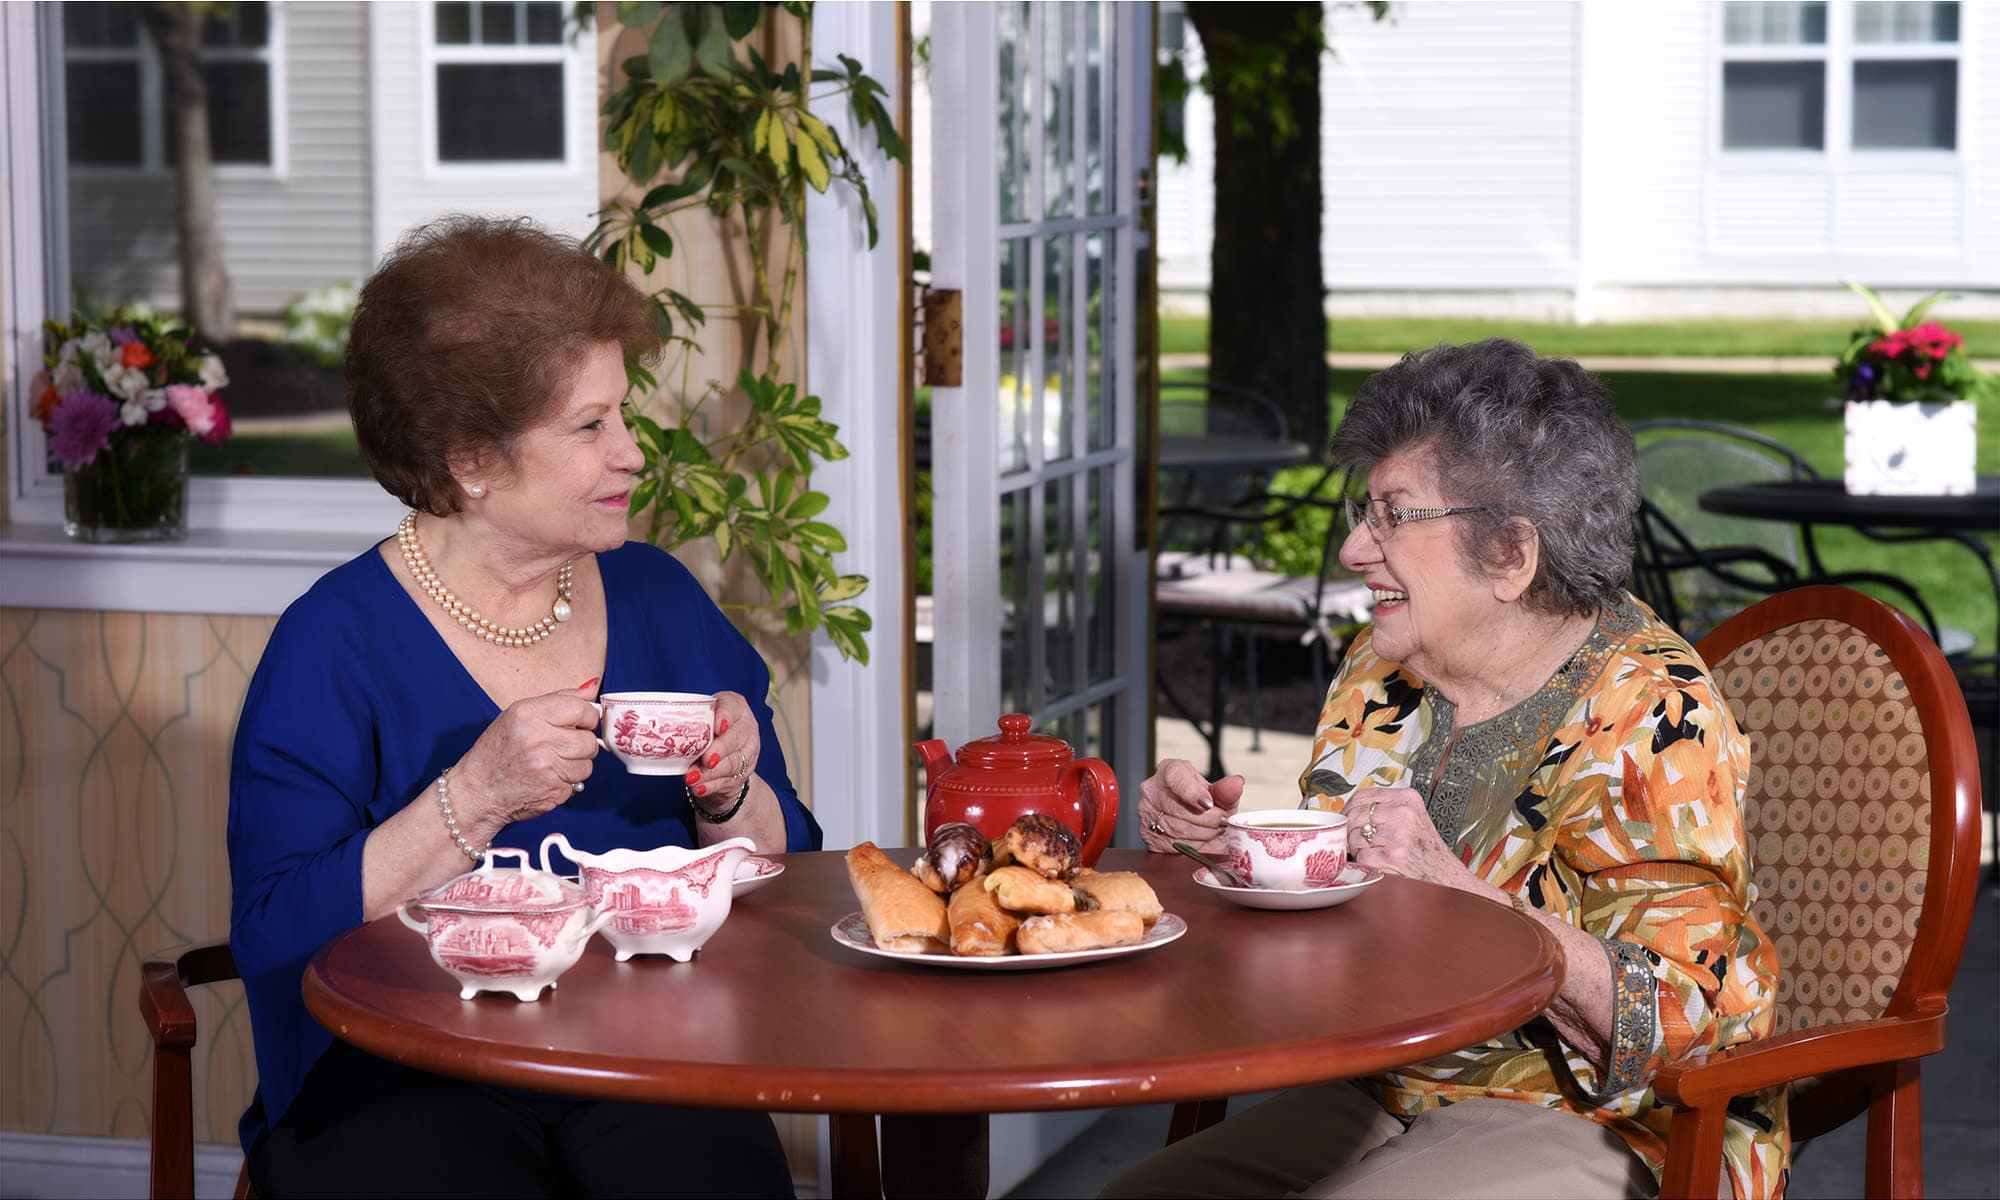 Residents catching up at Mattison Crossing at Manalapan Avenue in Freehold, New Jersey.